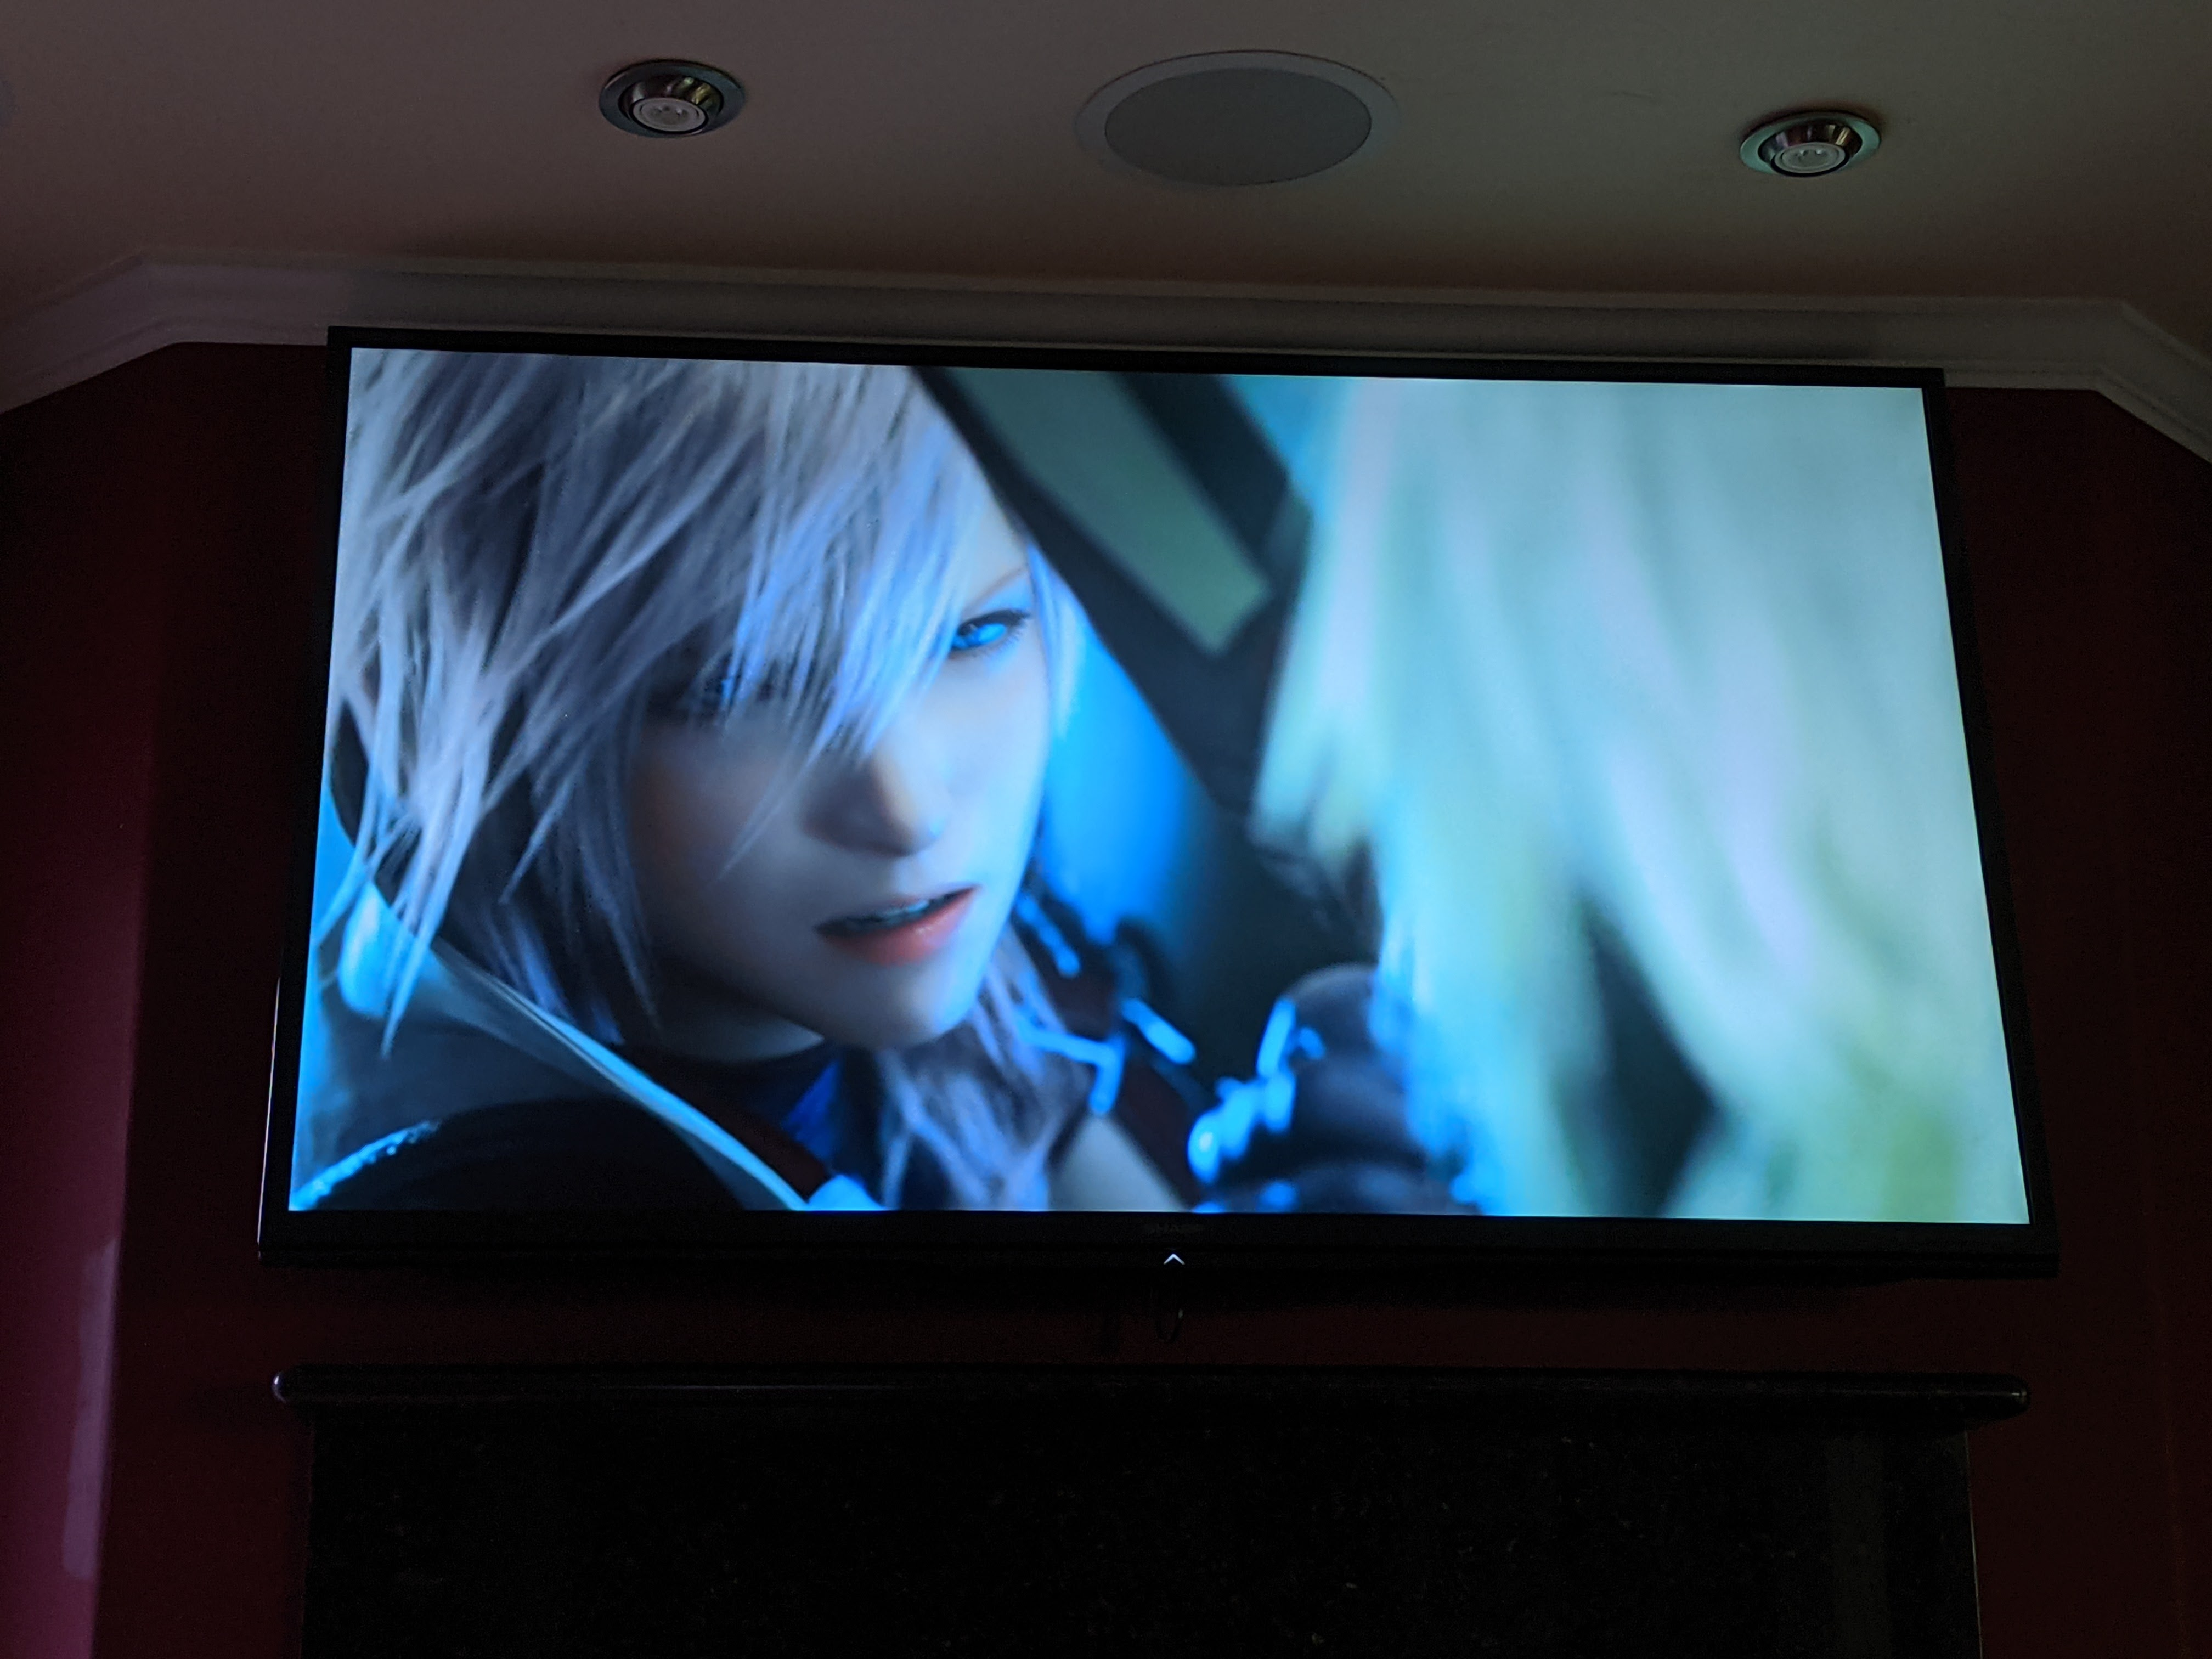 A head shot of the character Lightning from the video game Final Fantasy XIII: Lightning Returns looking at another character with blond hair